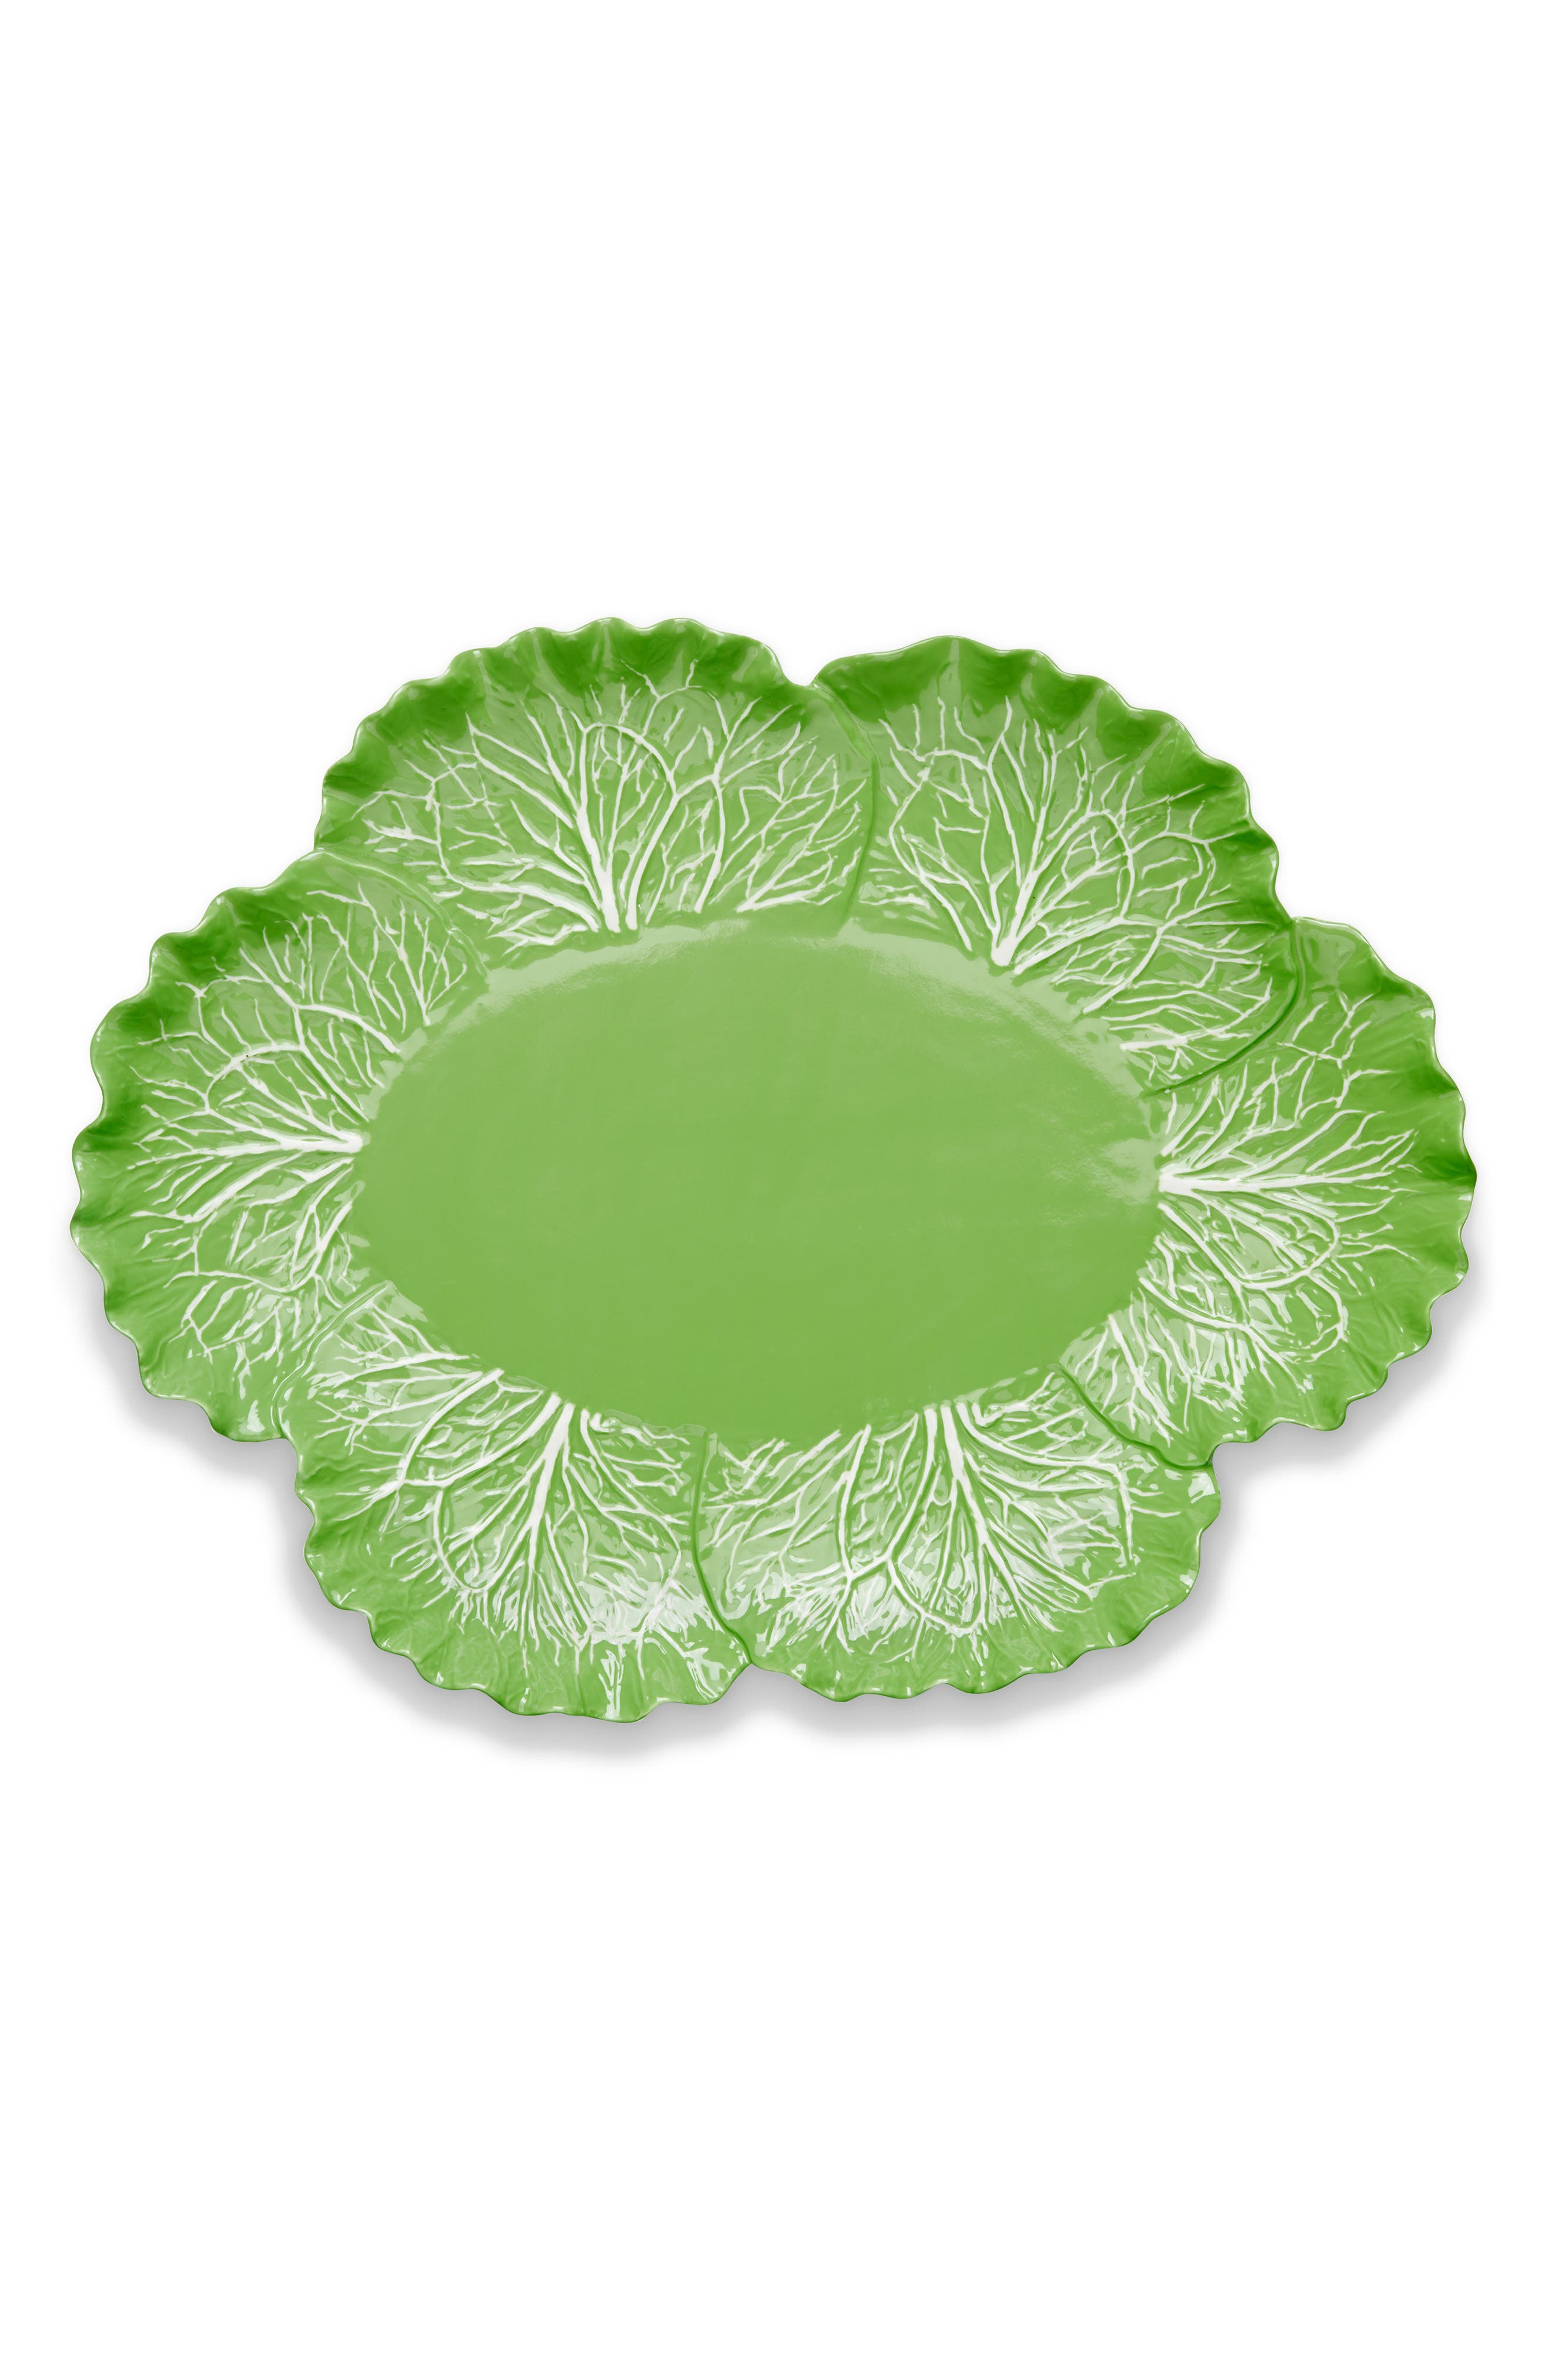 TORY BURCH, Lettuce Ware Oval Serving Platter, Main thumbnail 1, color, 307